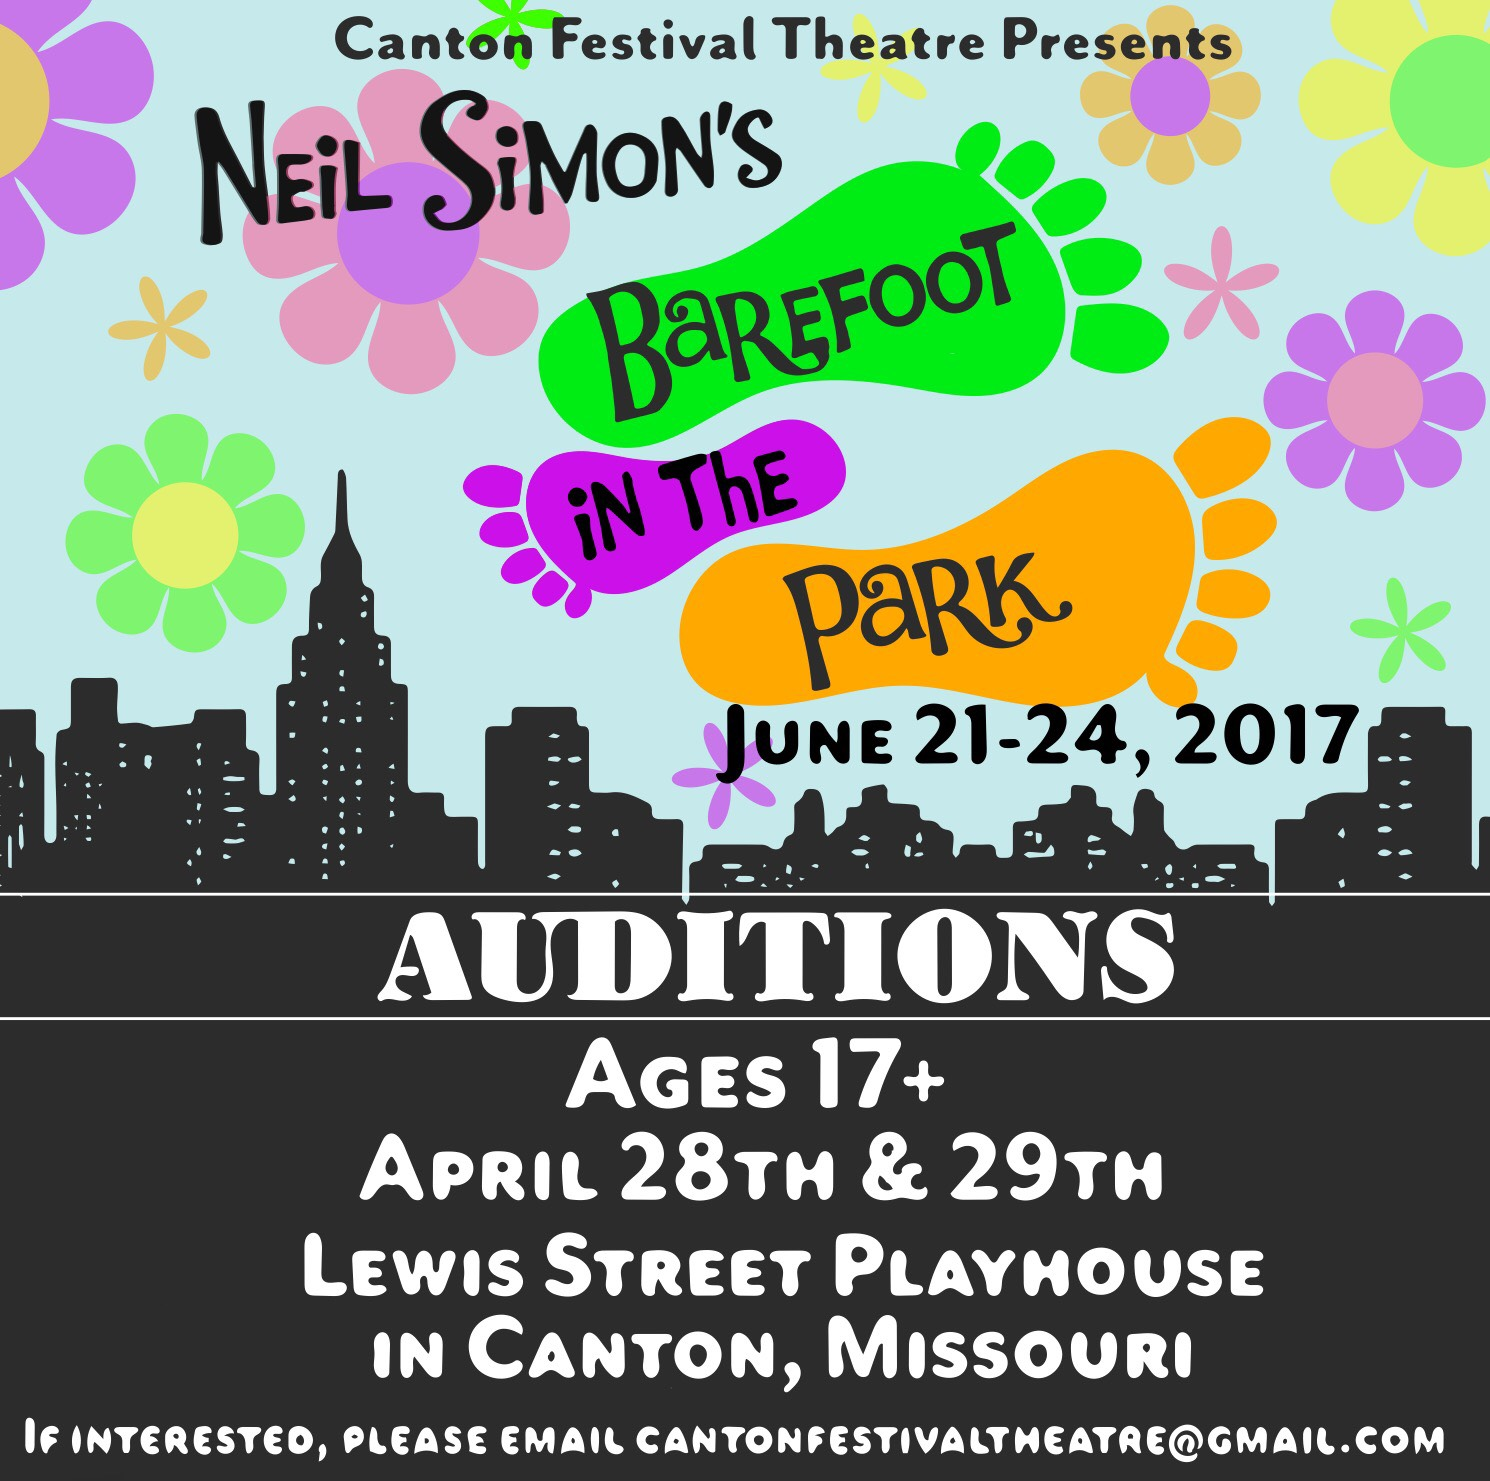 """Open Auditions for """"Barefoot in the Park"""" @ Lewis Street Playhouse 